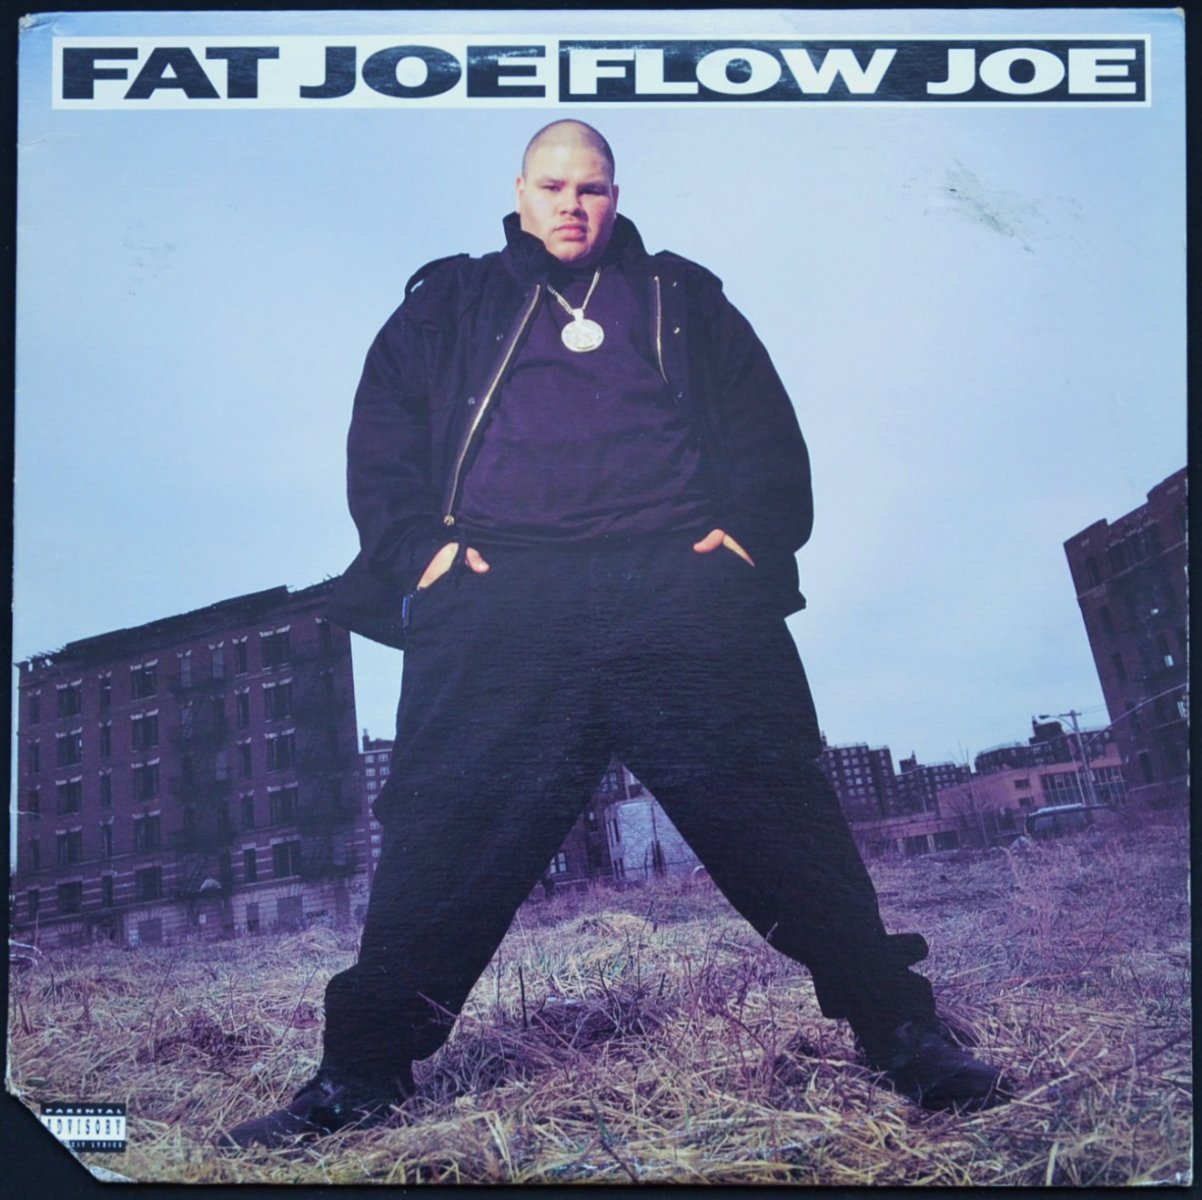 FAT JOE ‎/ FLOW JOE (PROD BY DIAMOND D) / LIVIN' FAT (PROD BY LORD FINESSE) (12